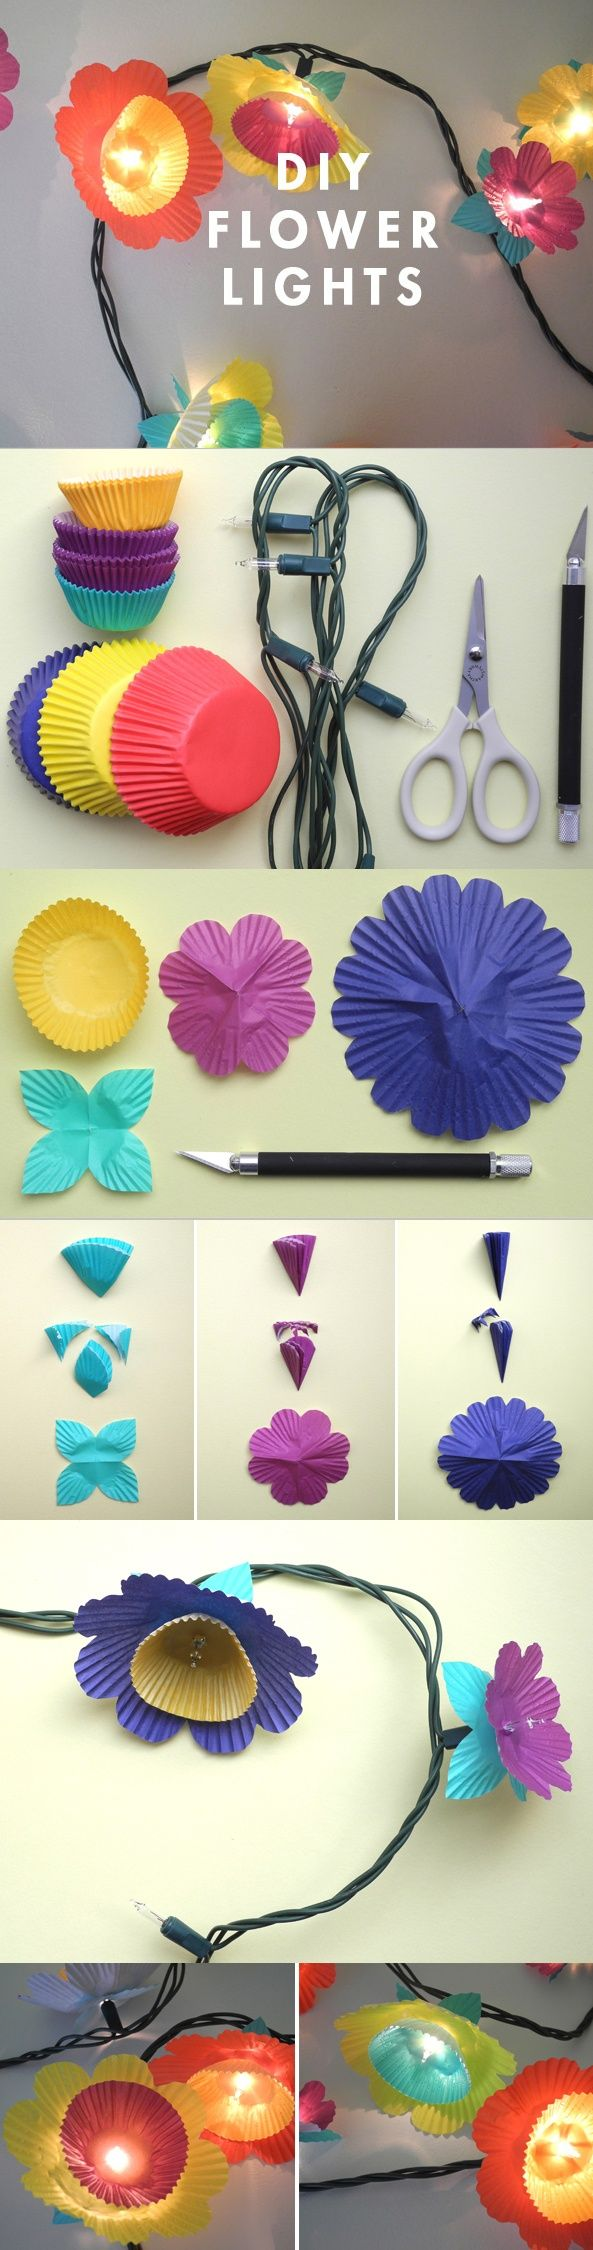 This activity expresses my personality. Through this DIY you can see the colors…